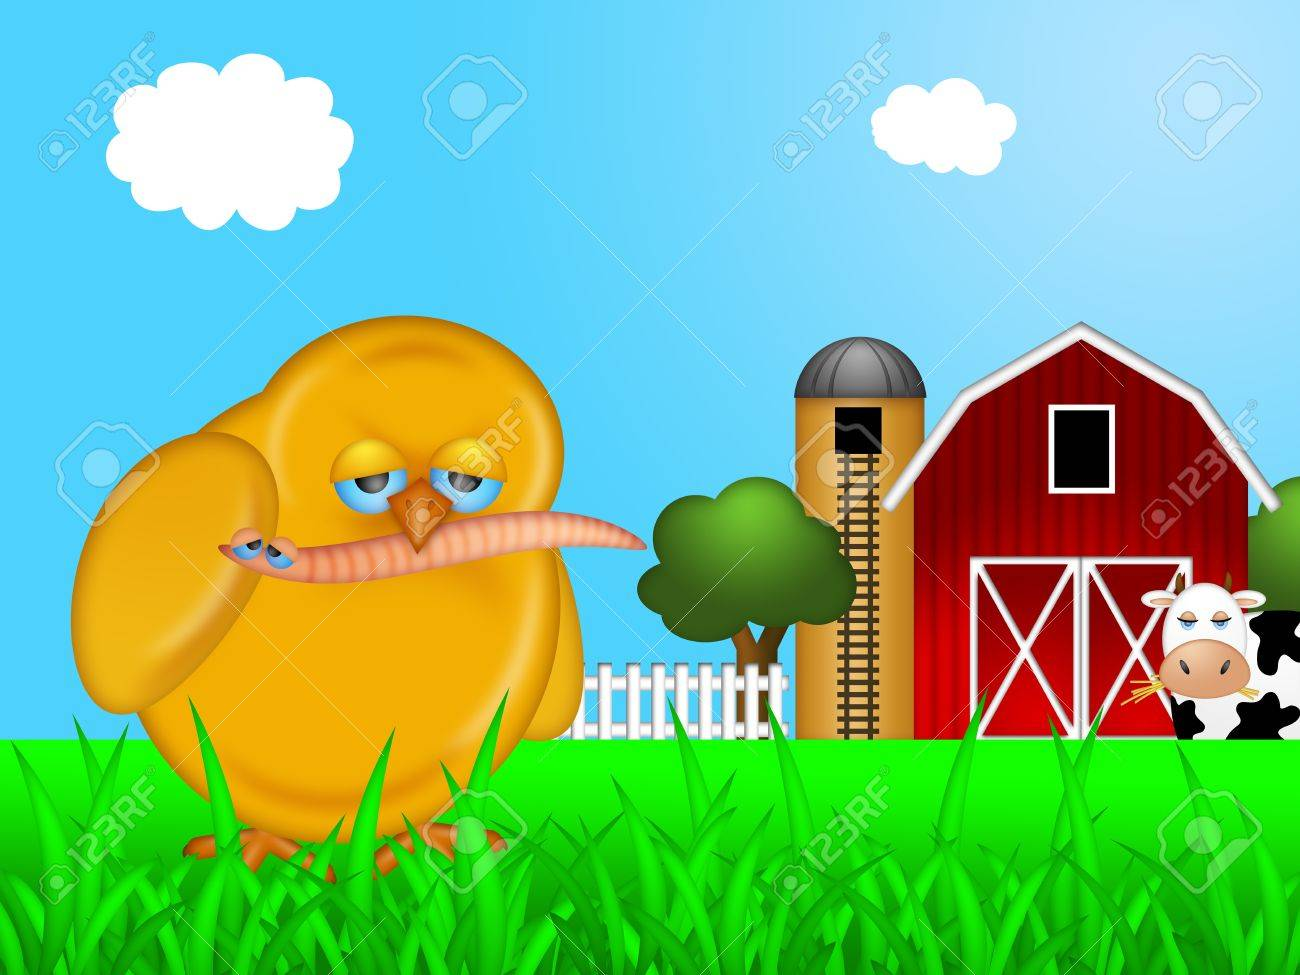 Cow on green pasture with red barn with grain silo royalty free stock - Chick Eating Worm On Farm With Red Barn And Silo With Cow Illustration Stock Illustration